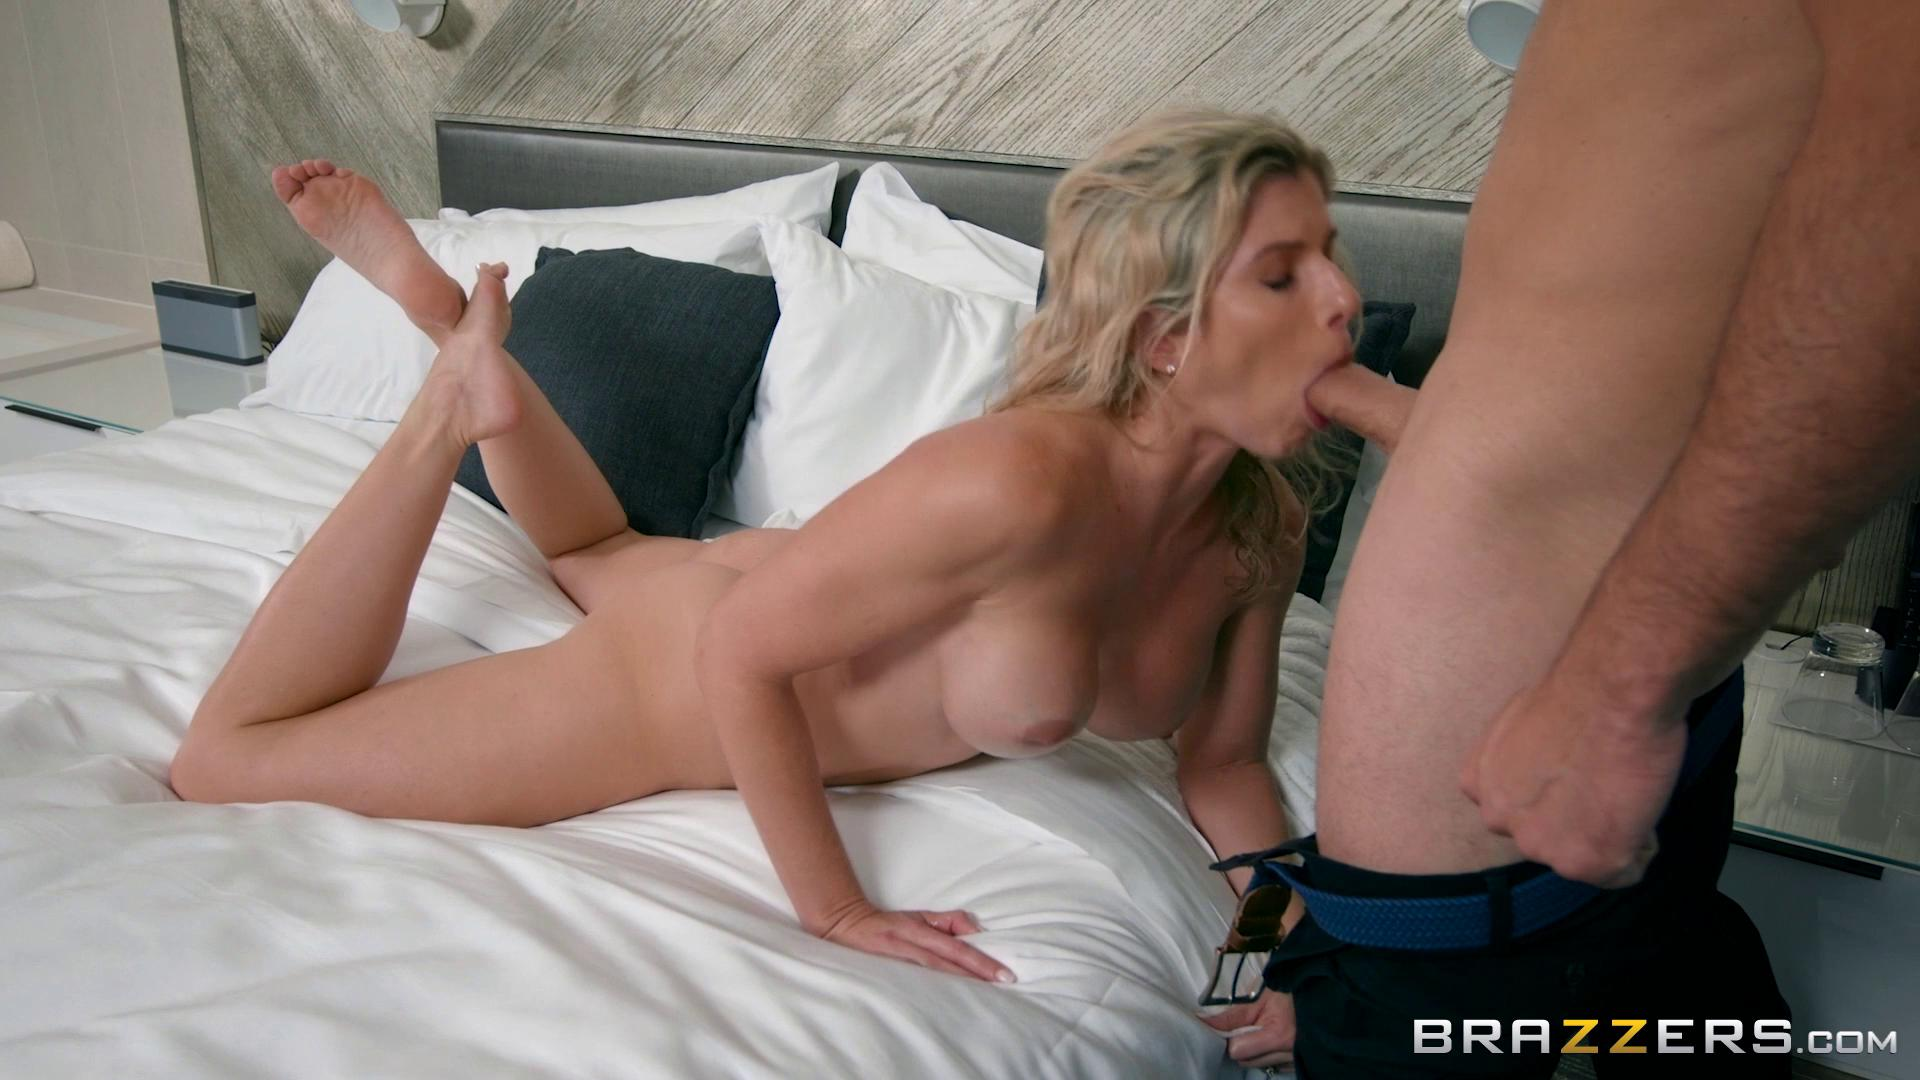 MilfsLikeItBig – Cory Chase MILFs On Vacation Part 1